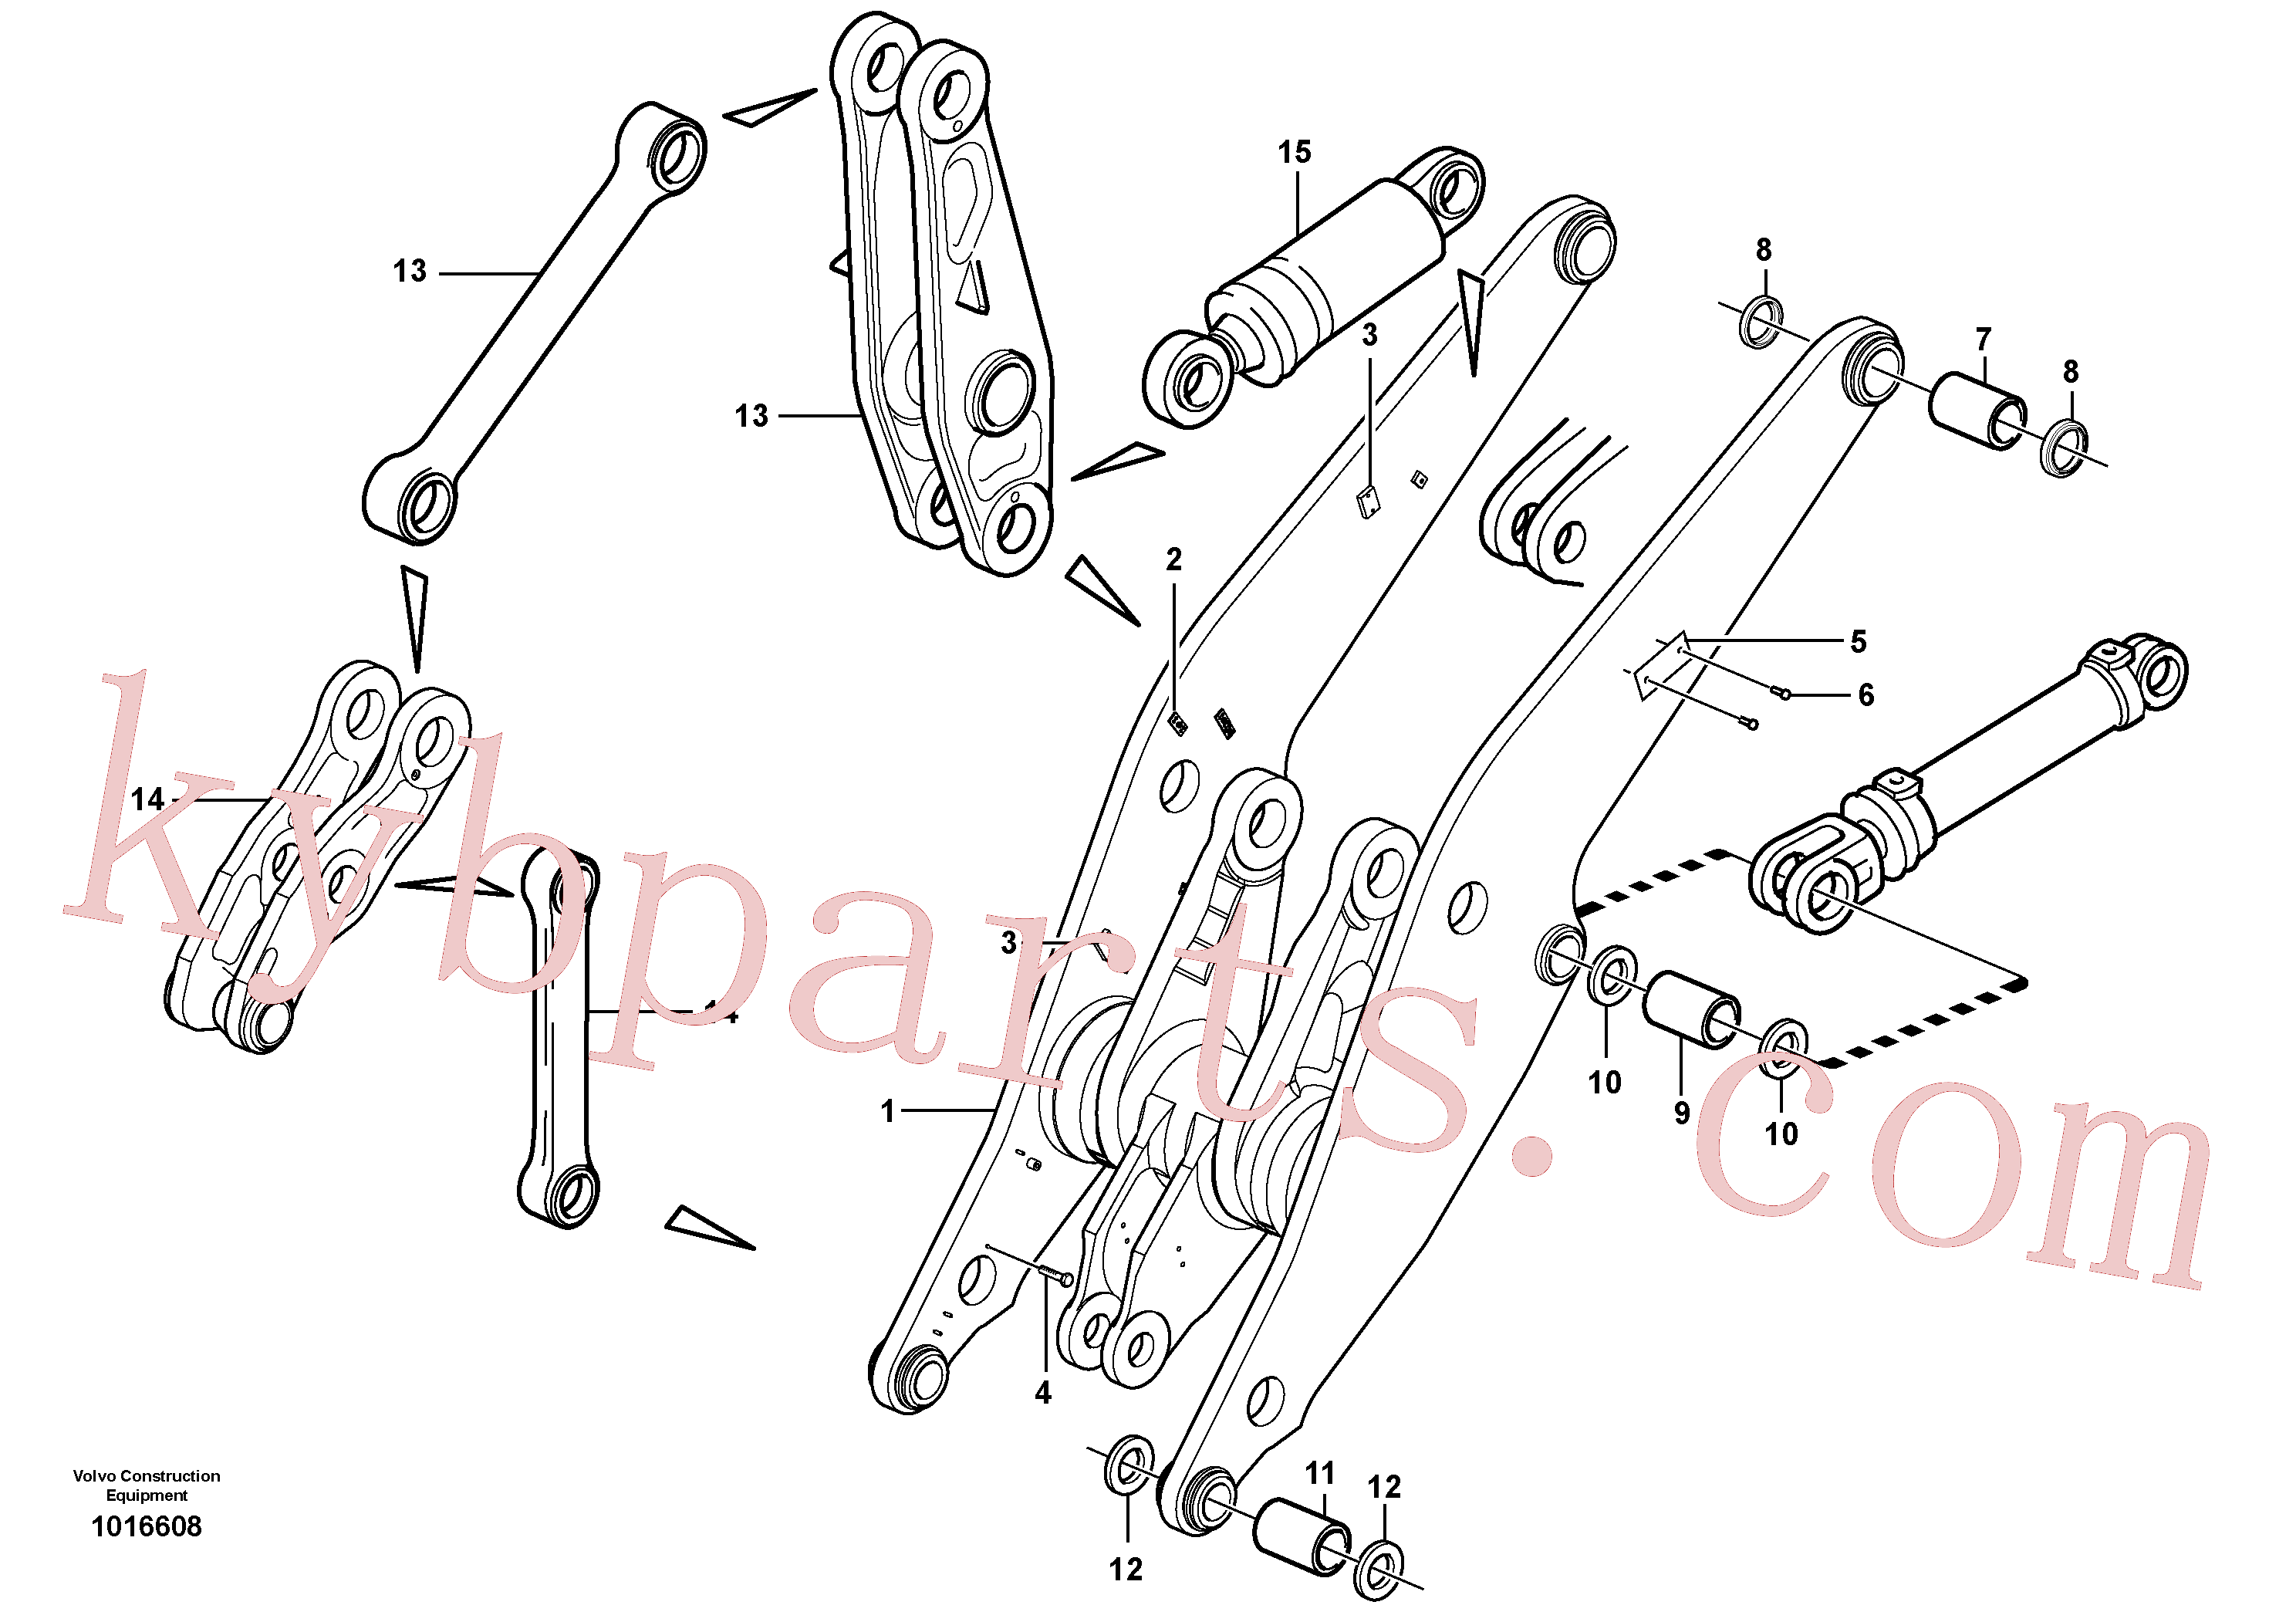 VOE11075281 for Volvo Lifting framework with assembly parts(1016608 assembly)